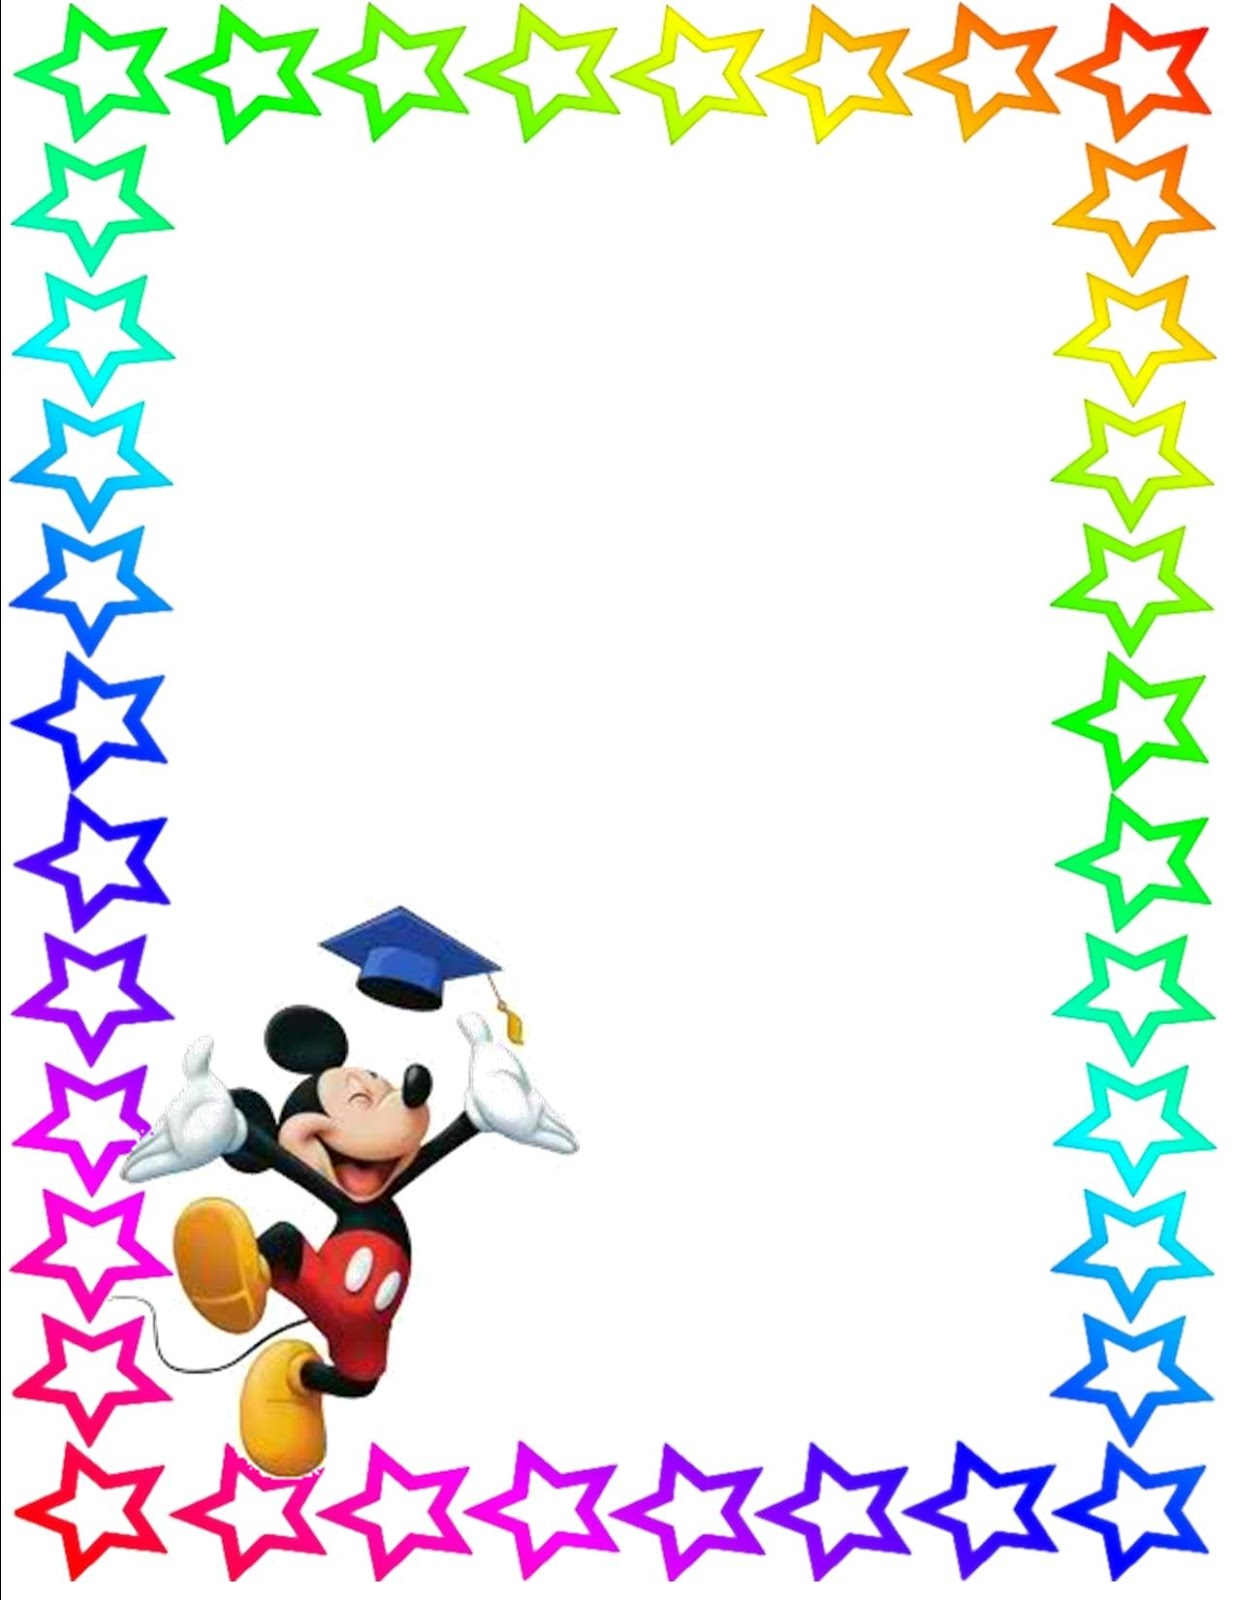 Cartoon Character Border Design : Free printable letter borders clipart best